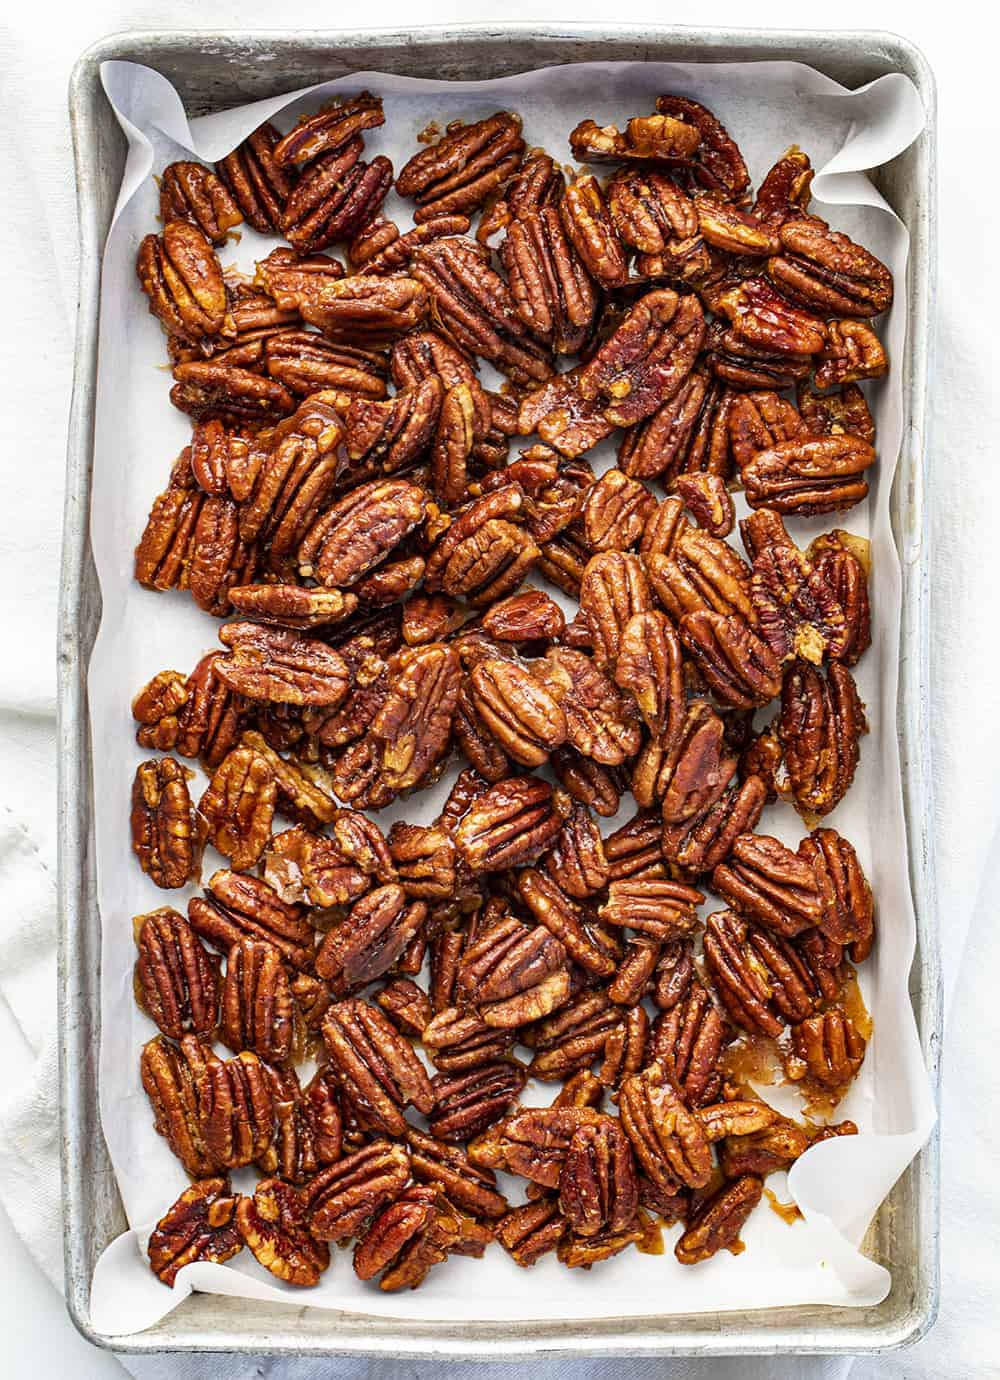 Overhead of Candied Pecans in a Pan